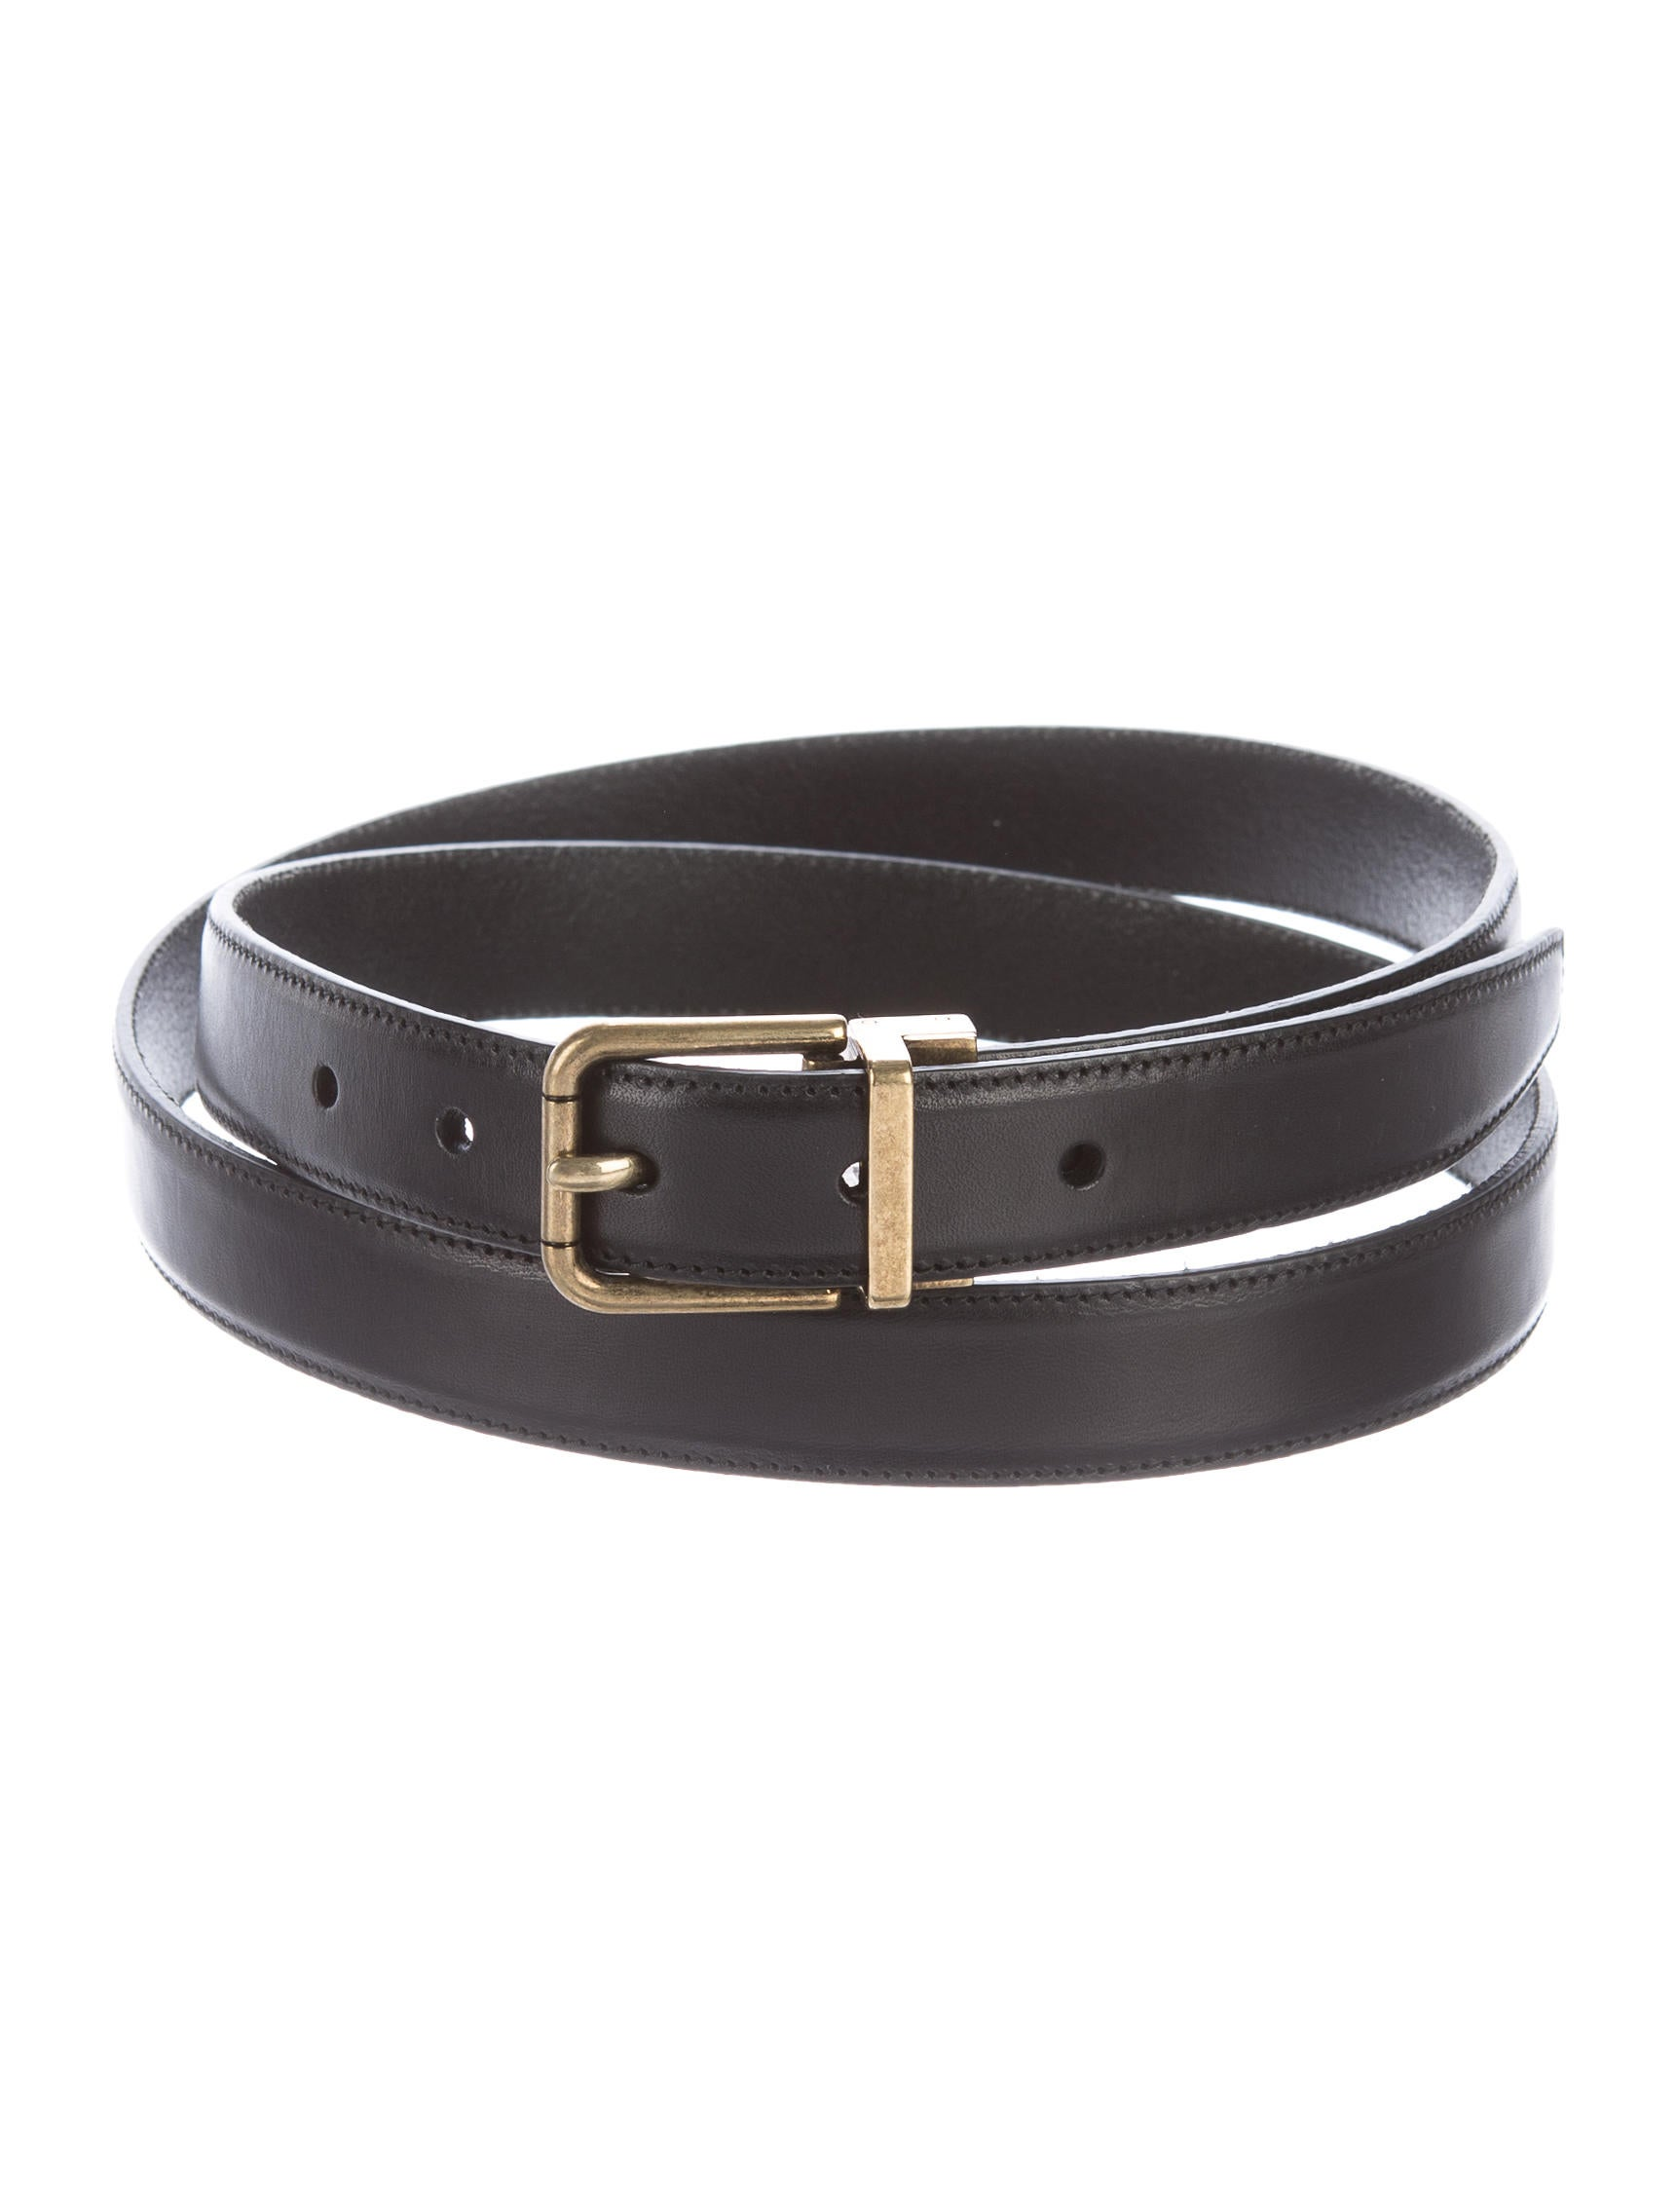 A timeless leather belt with a cool crisscross detail. Loop through your jeans and tuck in your tee for a laid-back look with polish. Designed to be worn at the waist or the hips. Italian leather.